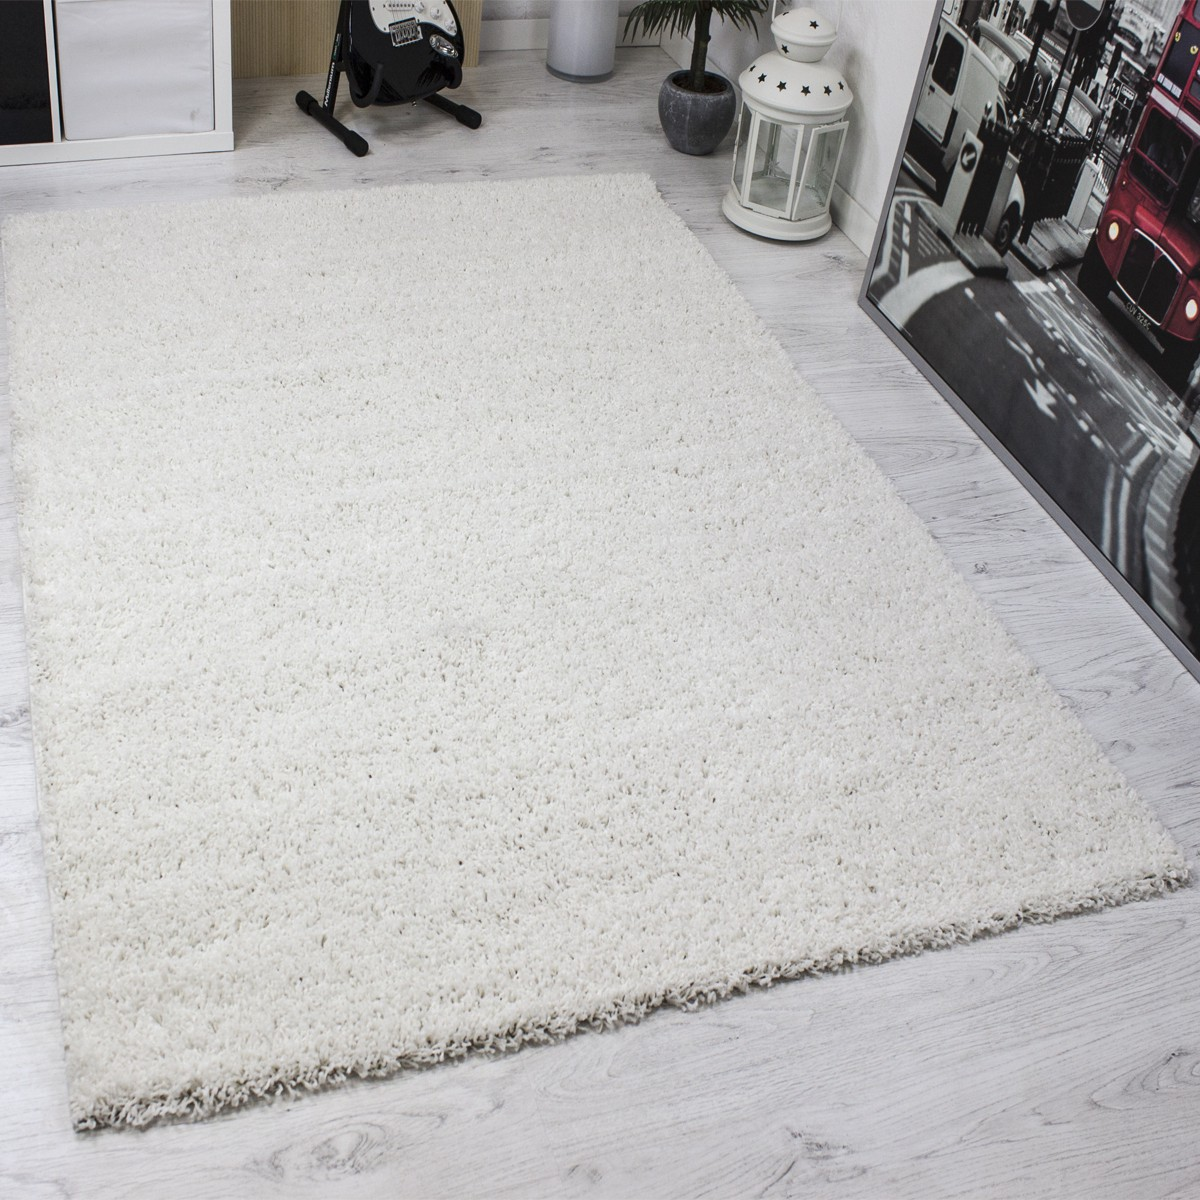 shaggy poils longs tapis moderne entretien facile hauteur du monochrome blanc ebay. Black Bedroom Furniture Sets. Home Design Ideas